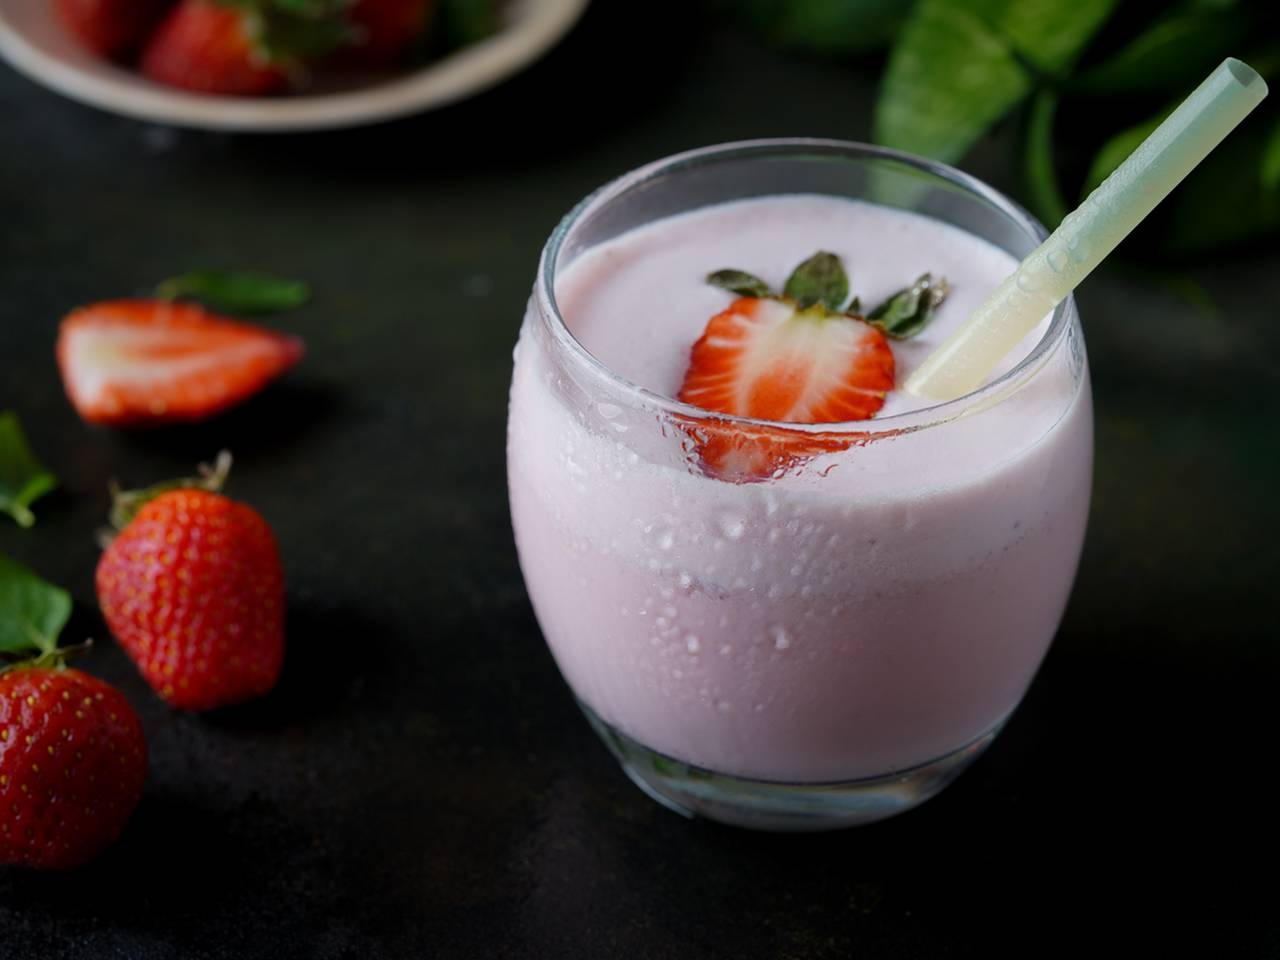 One Minute Strawberry Milkshake